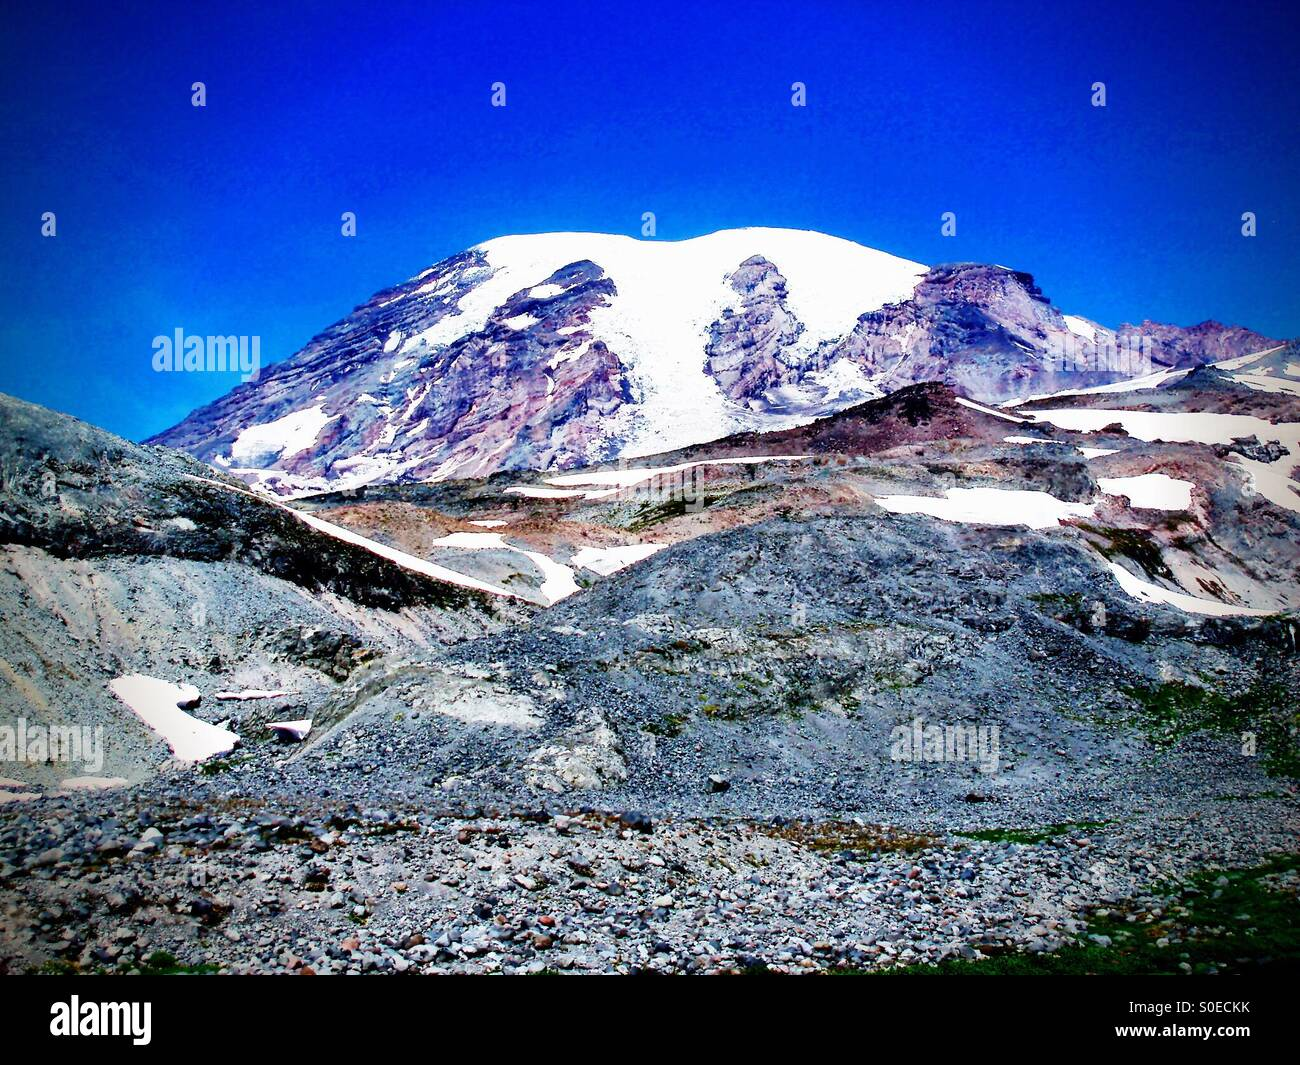 Summit ancient glacier, lava rock, mountain climbing under perfect clear blue skies - Stock Image